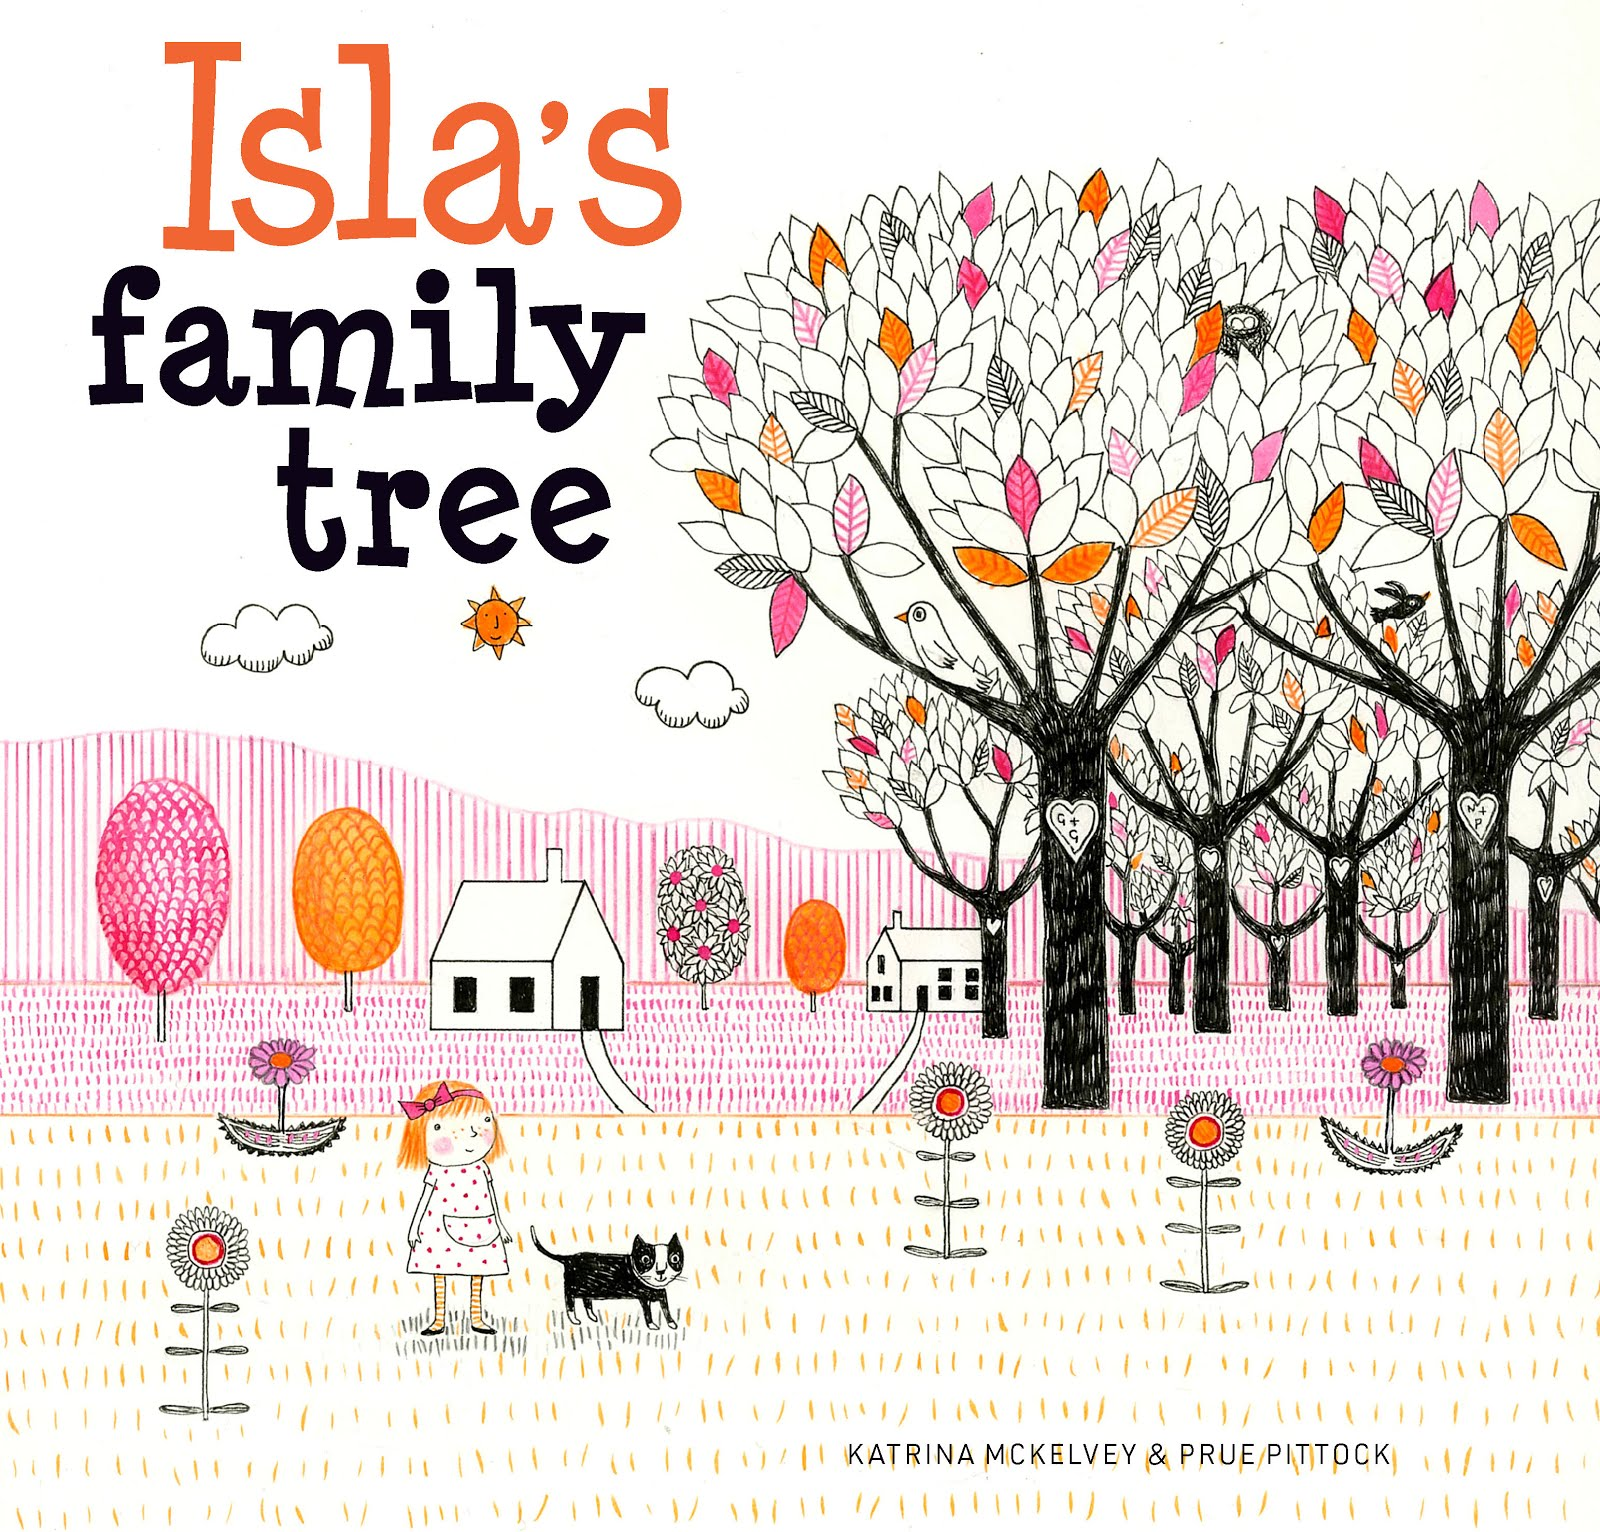 Isla's Family Tree by Katrina McKelvey and Prue Pittock